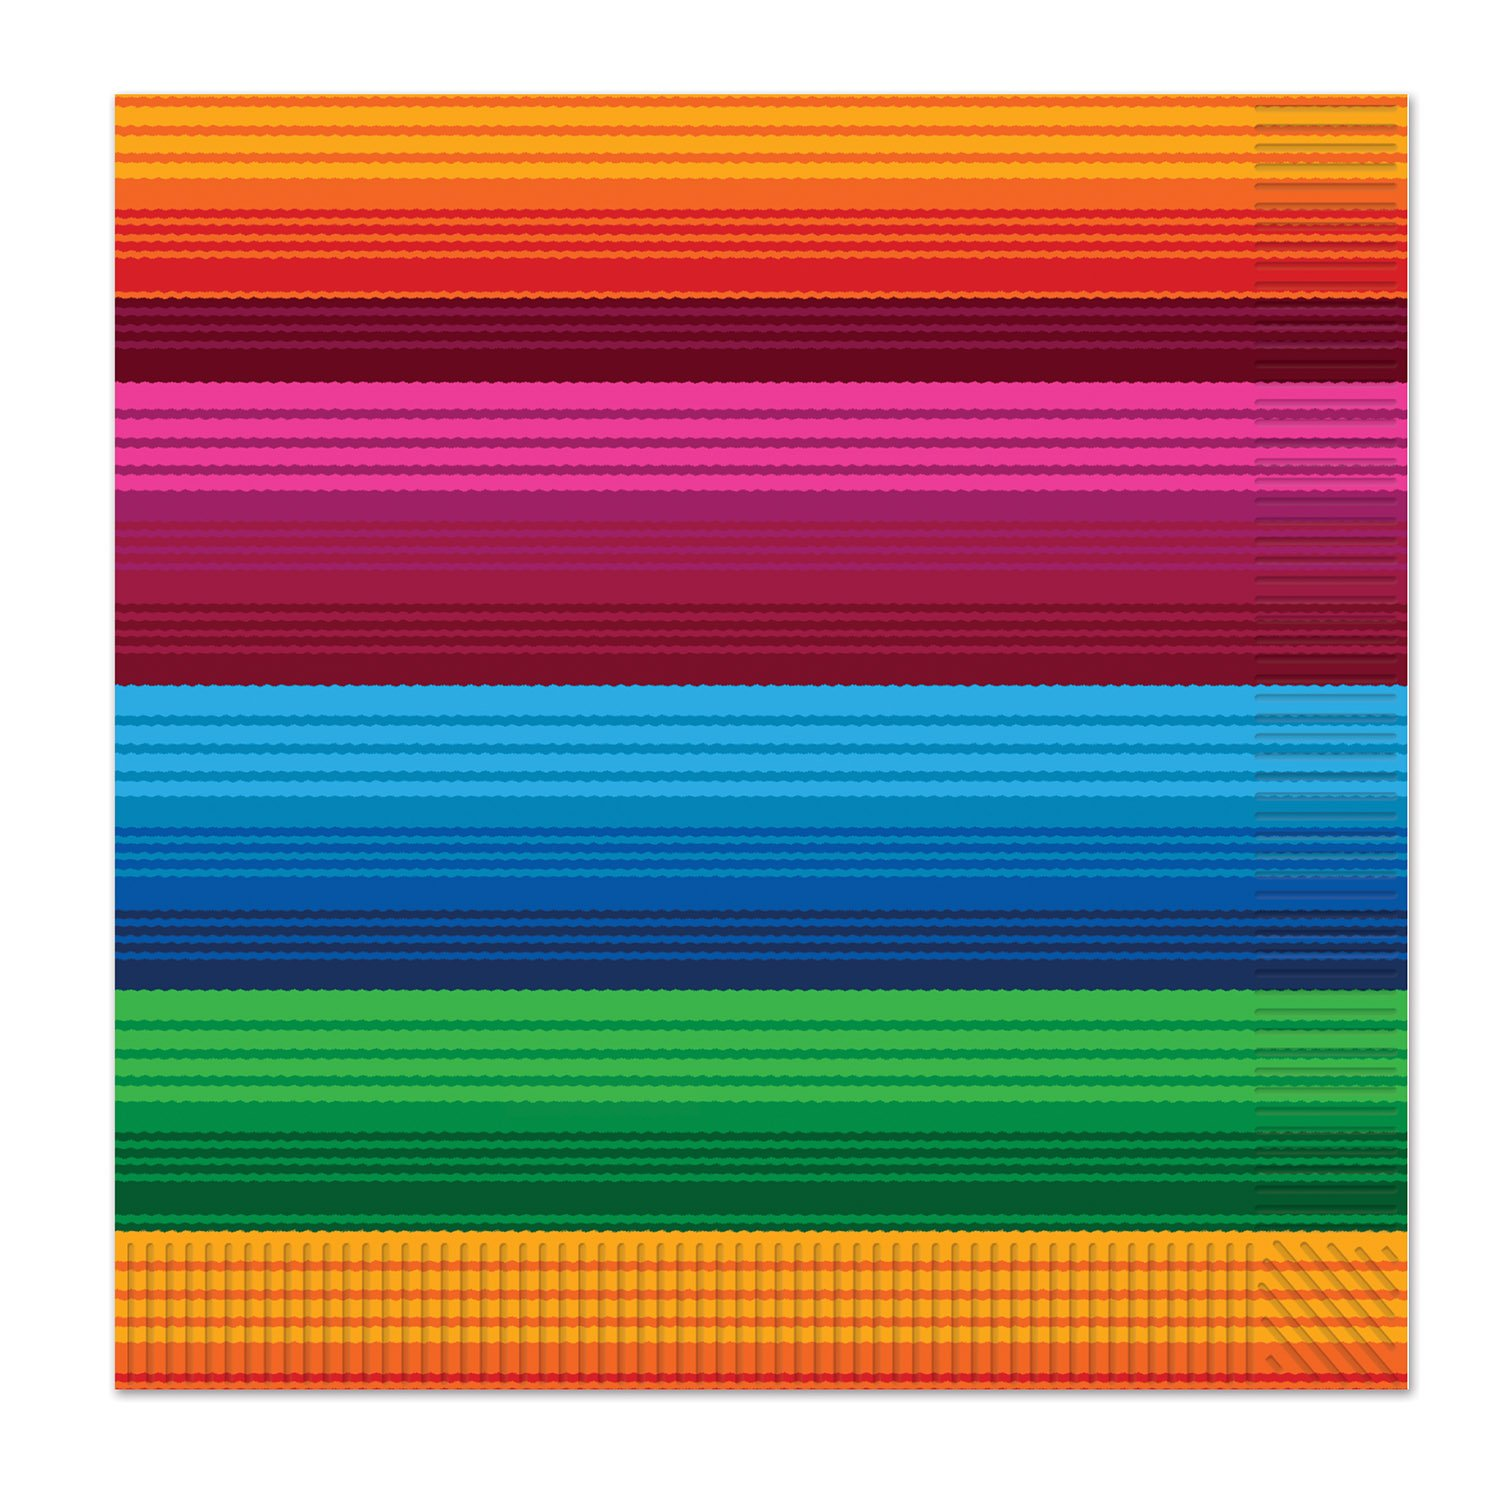 Beistle Fiesta Luncheon Napkins, Multicolored (Value 3-Pack) by Beistle